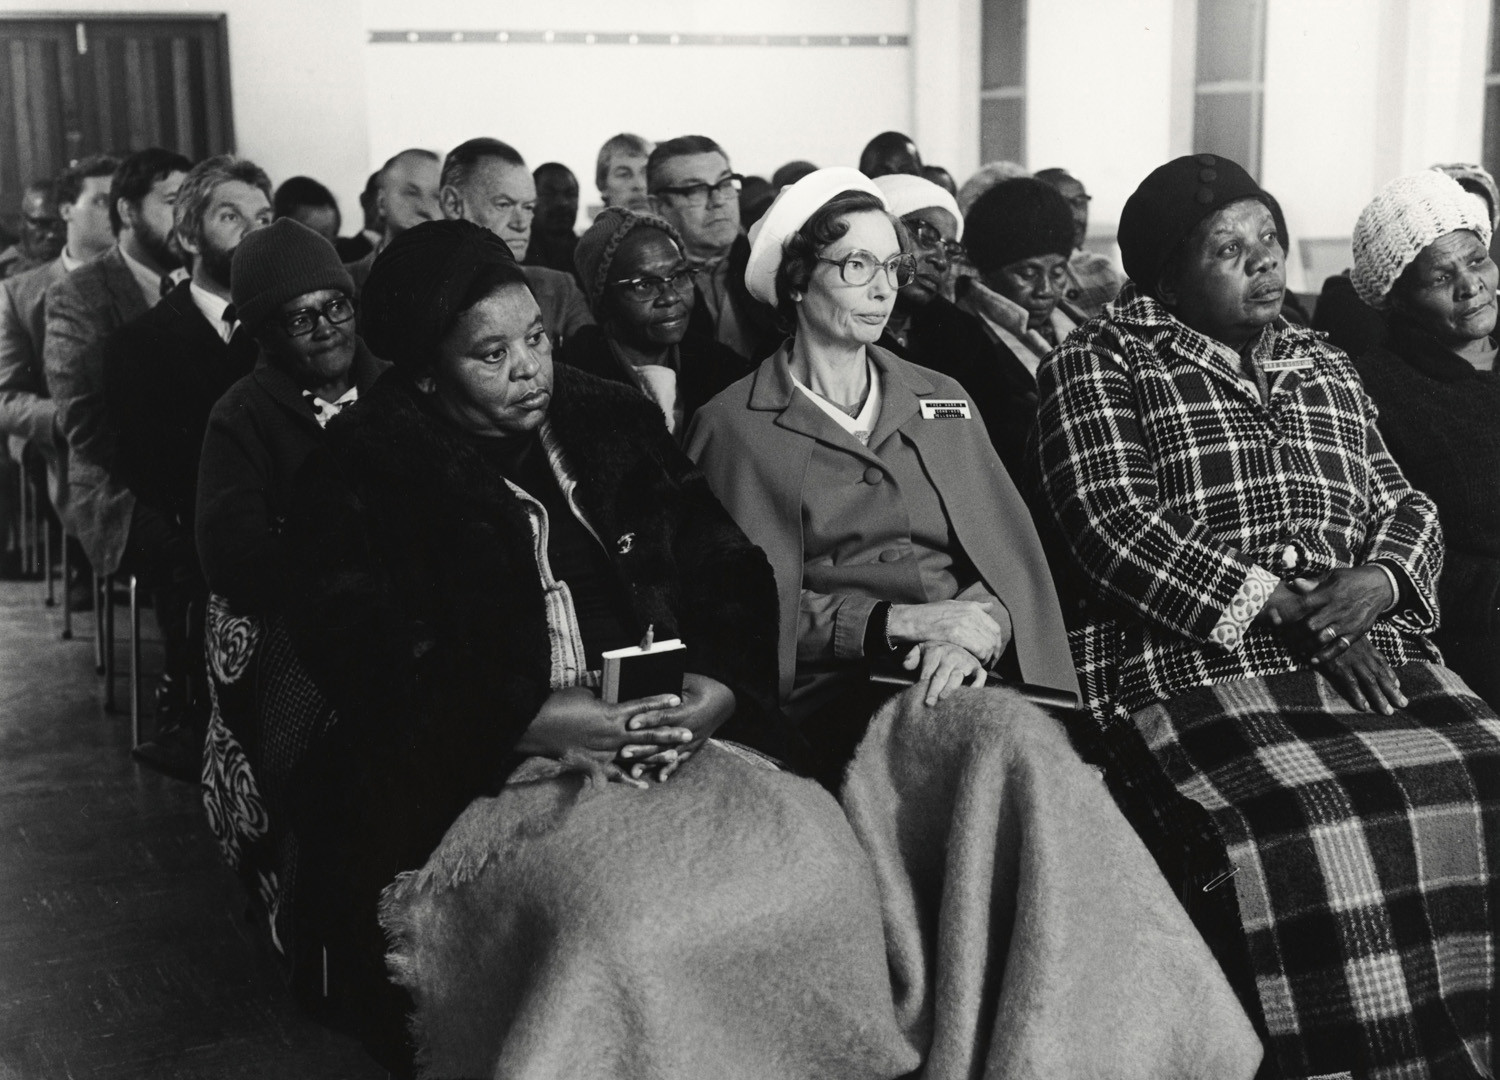 David Goldblatt, Methodists meet to find ways of reducing the racial, cultural and class barriers that divide them, 3 July 1980